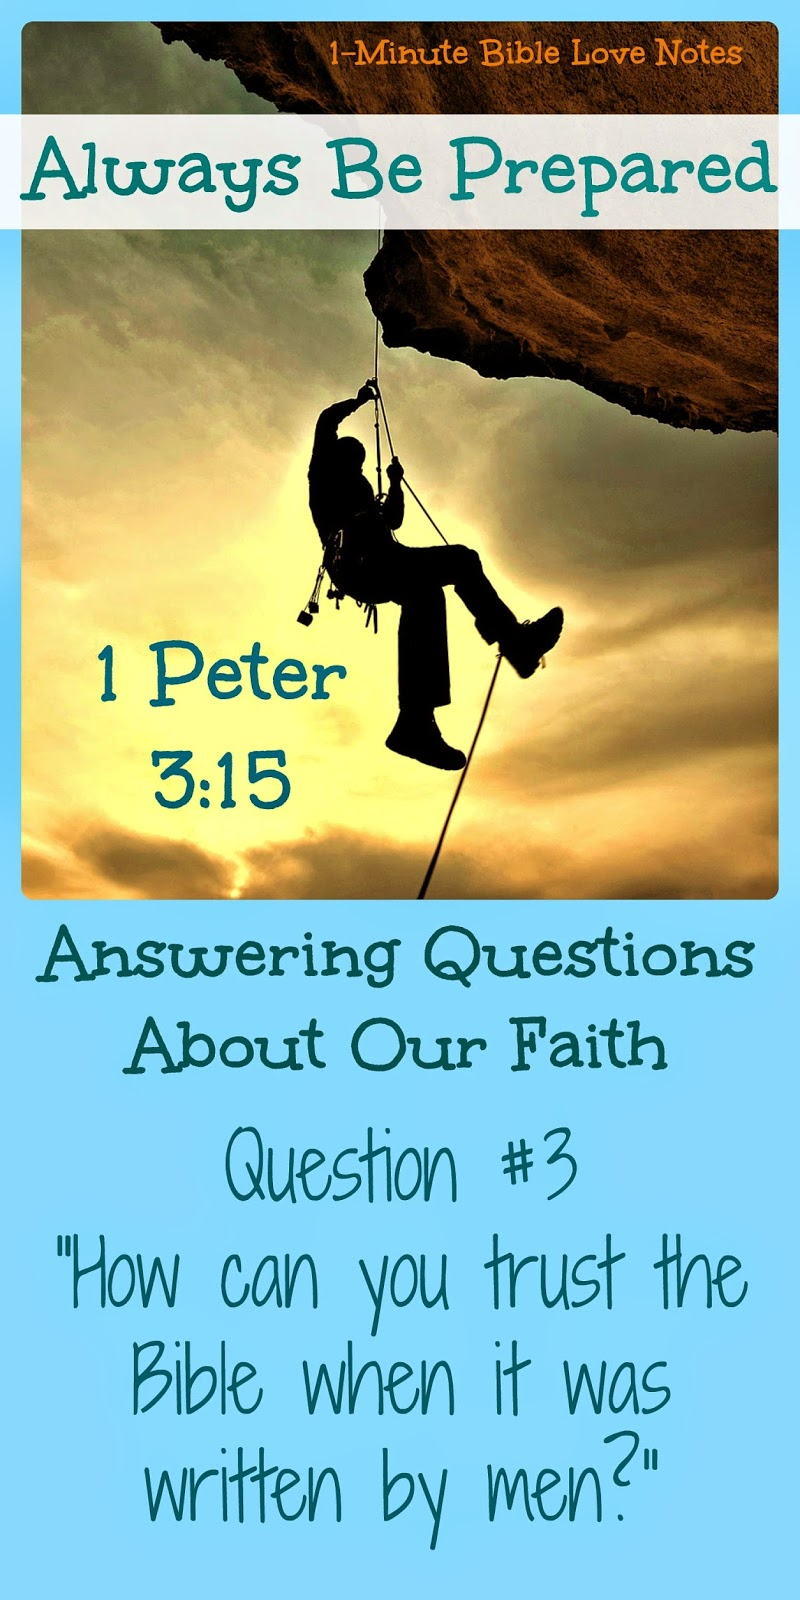 1 Peter 3:15, Be prepared to answer faith questions, how can you trust the Bible? Wasn't the Bible written by men?